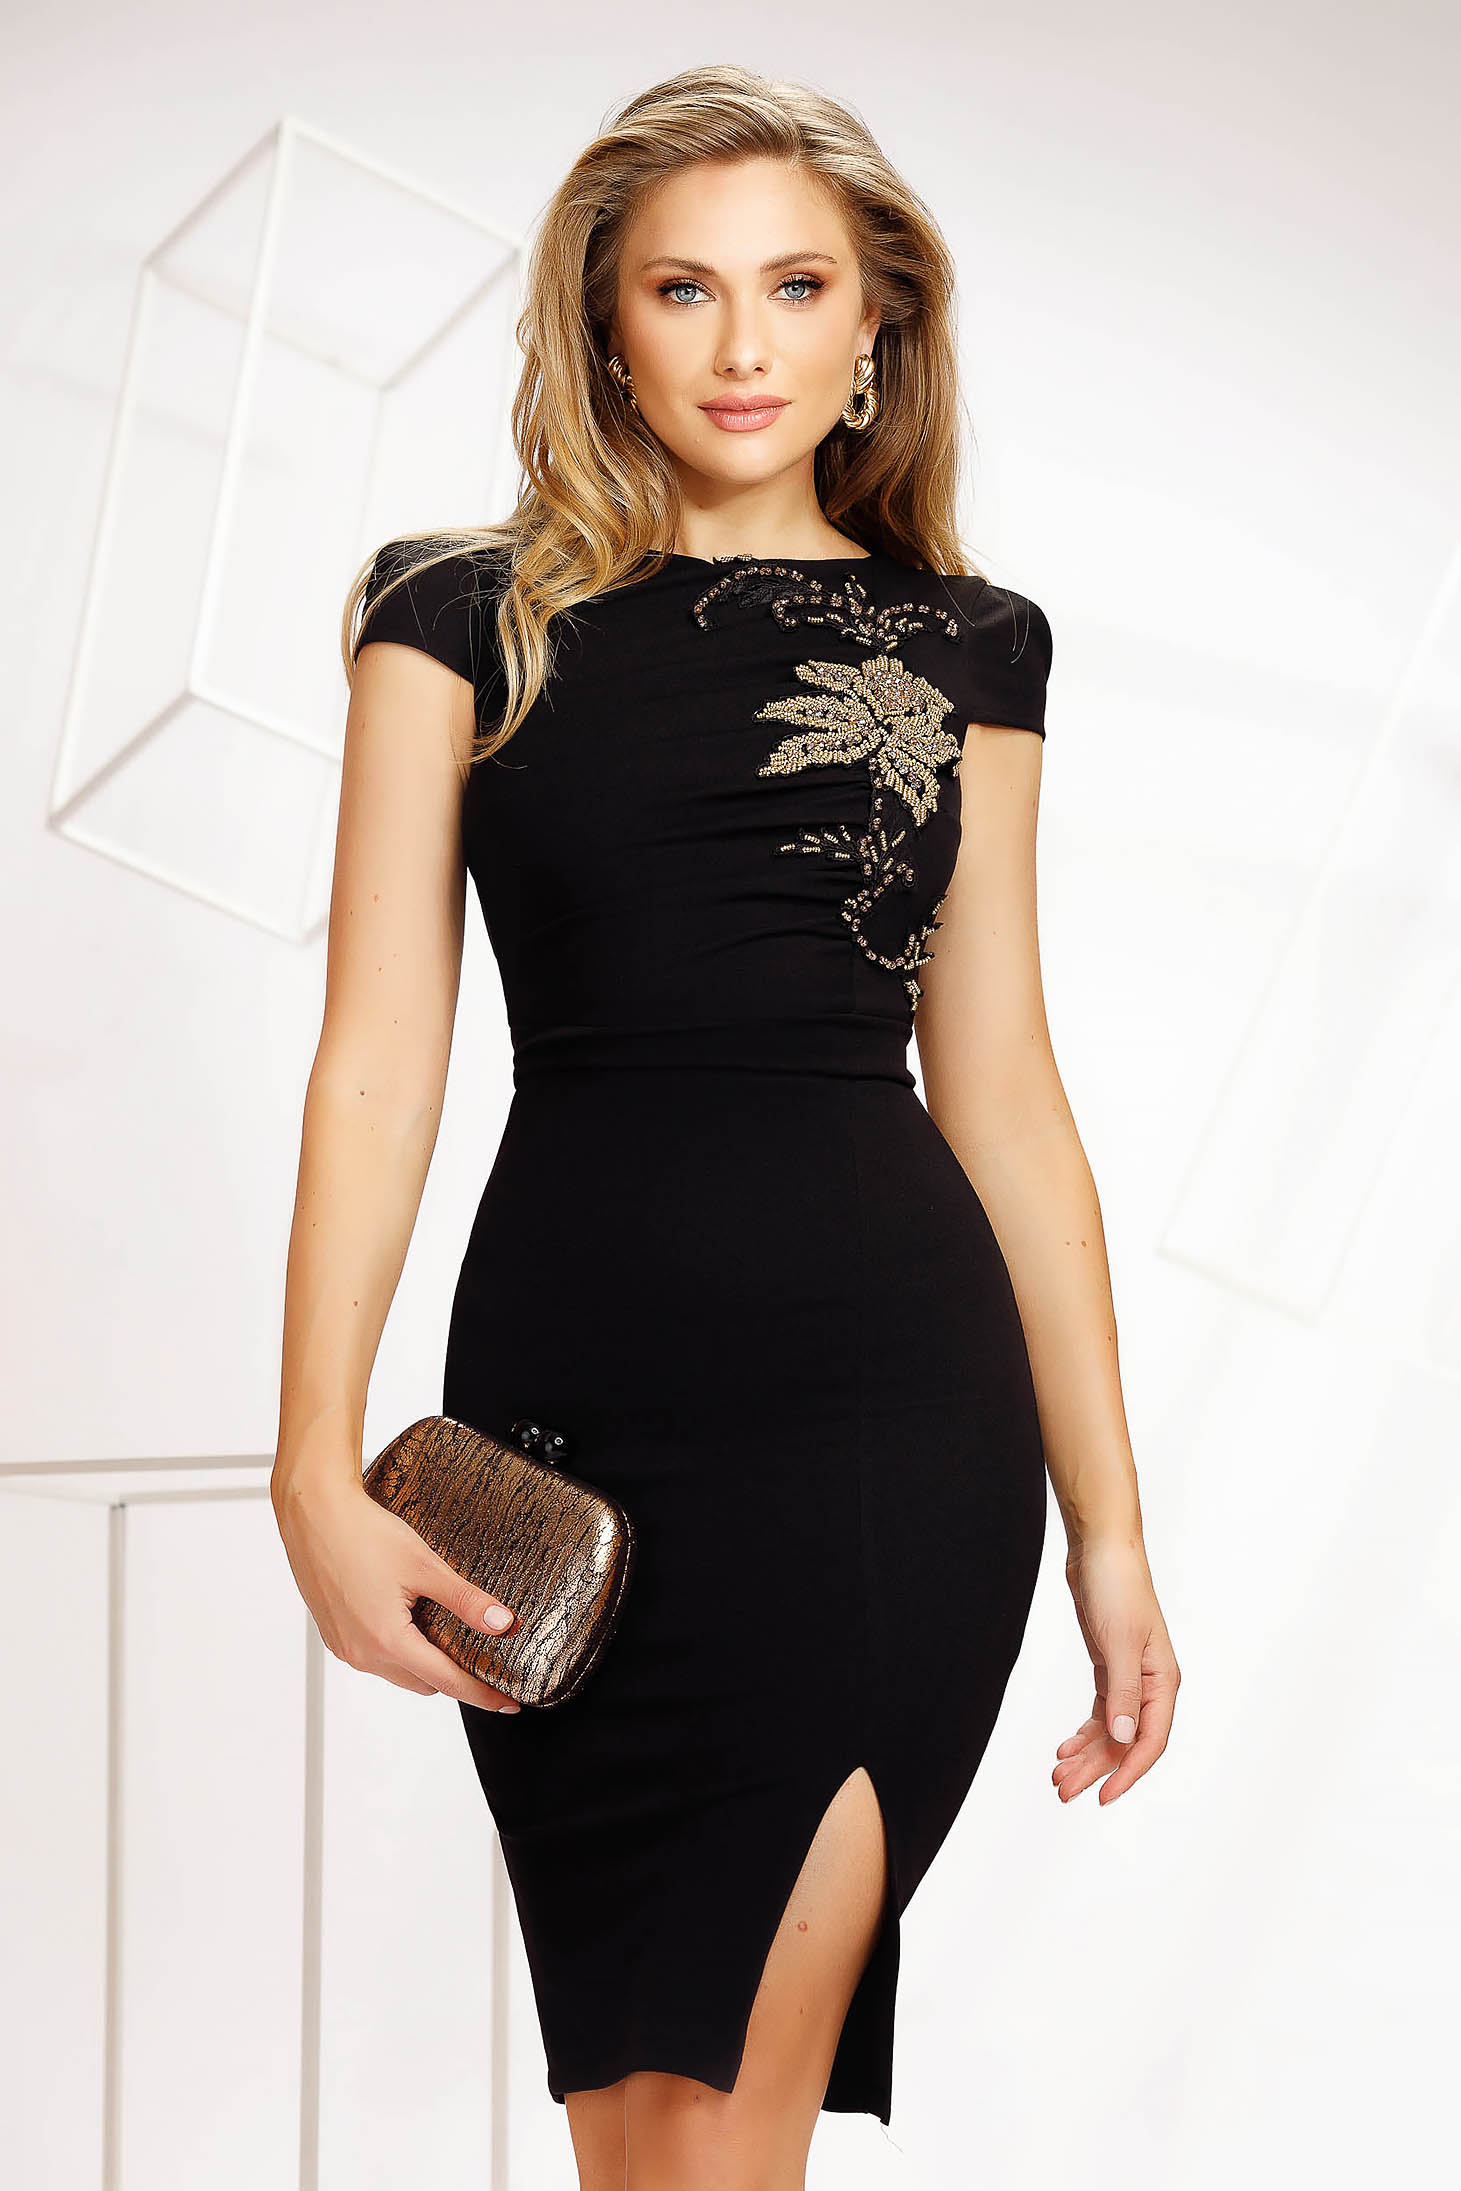 Black dress occasional short cut pencil thin fabric from elastic fabric with crystal embellished details